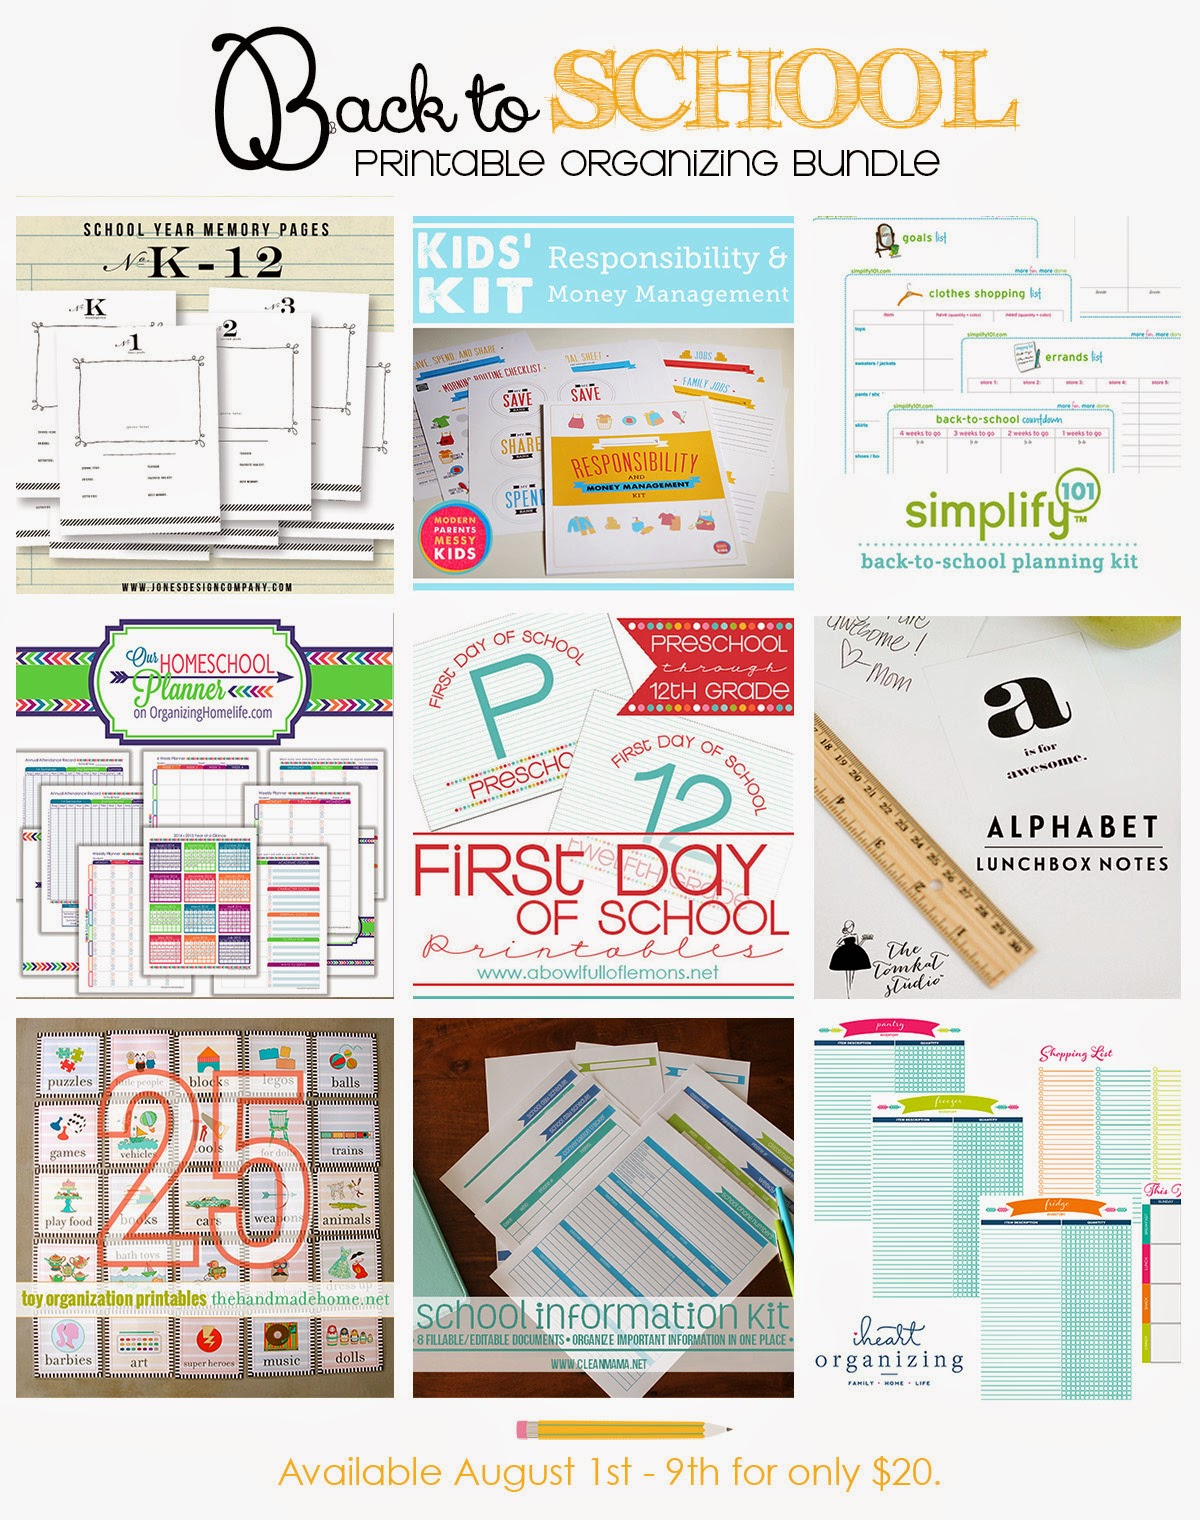 4 Easy Steps To Back To School Organization